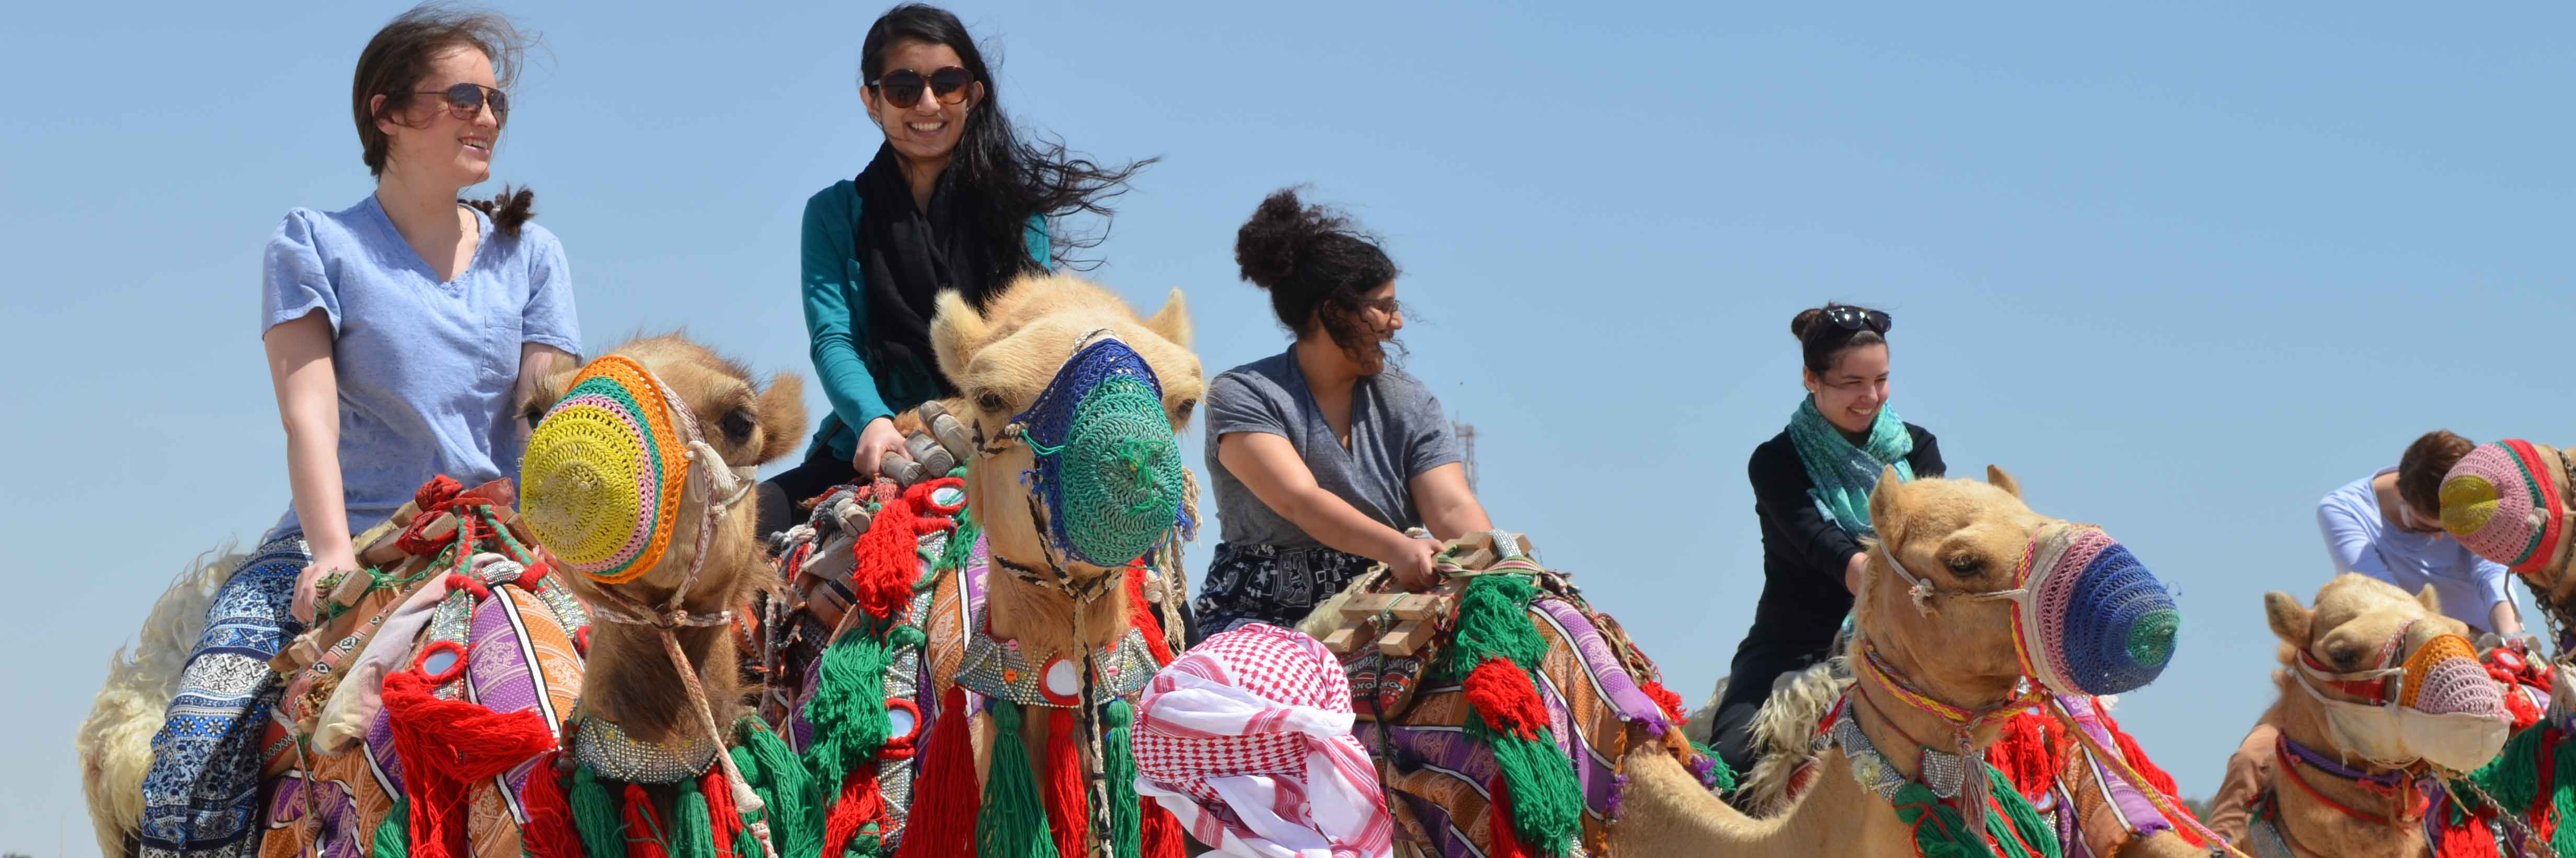 Students riding camels in Qatar